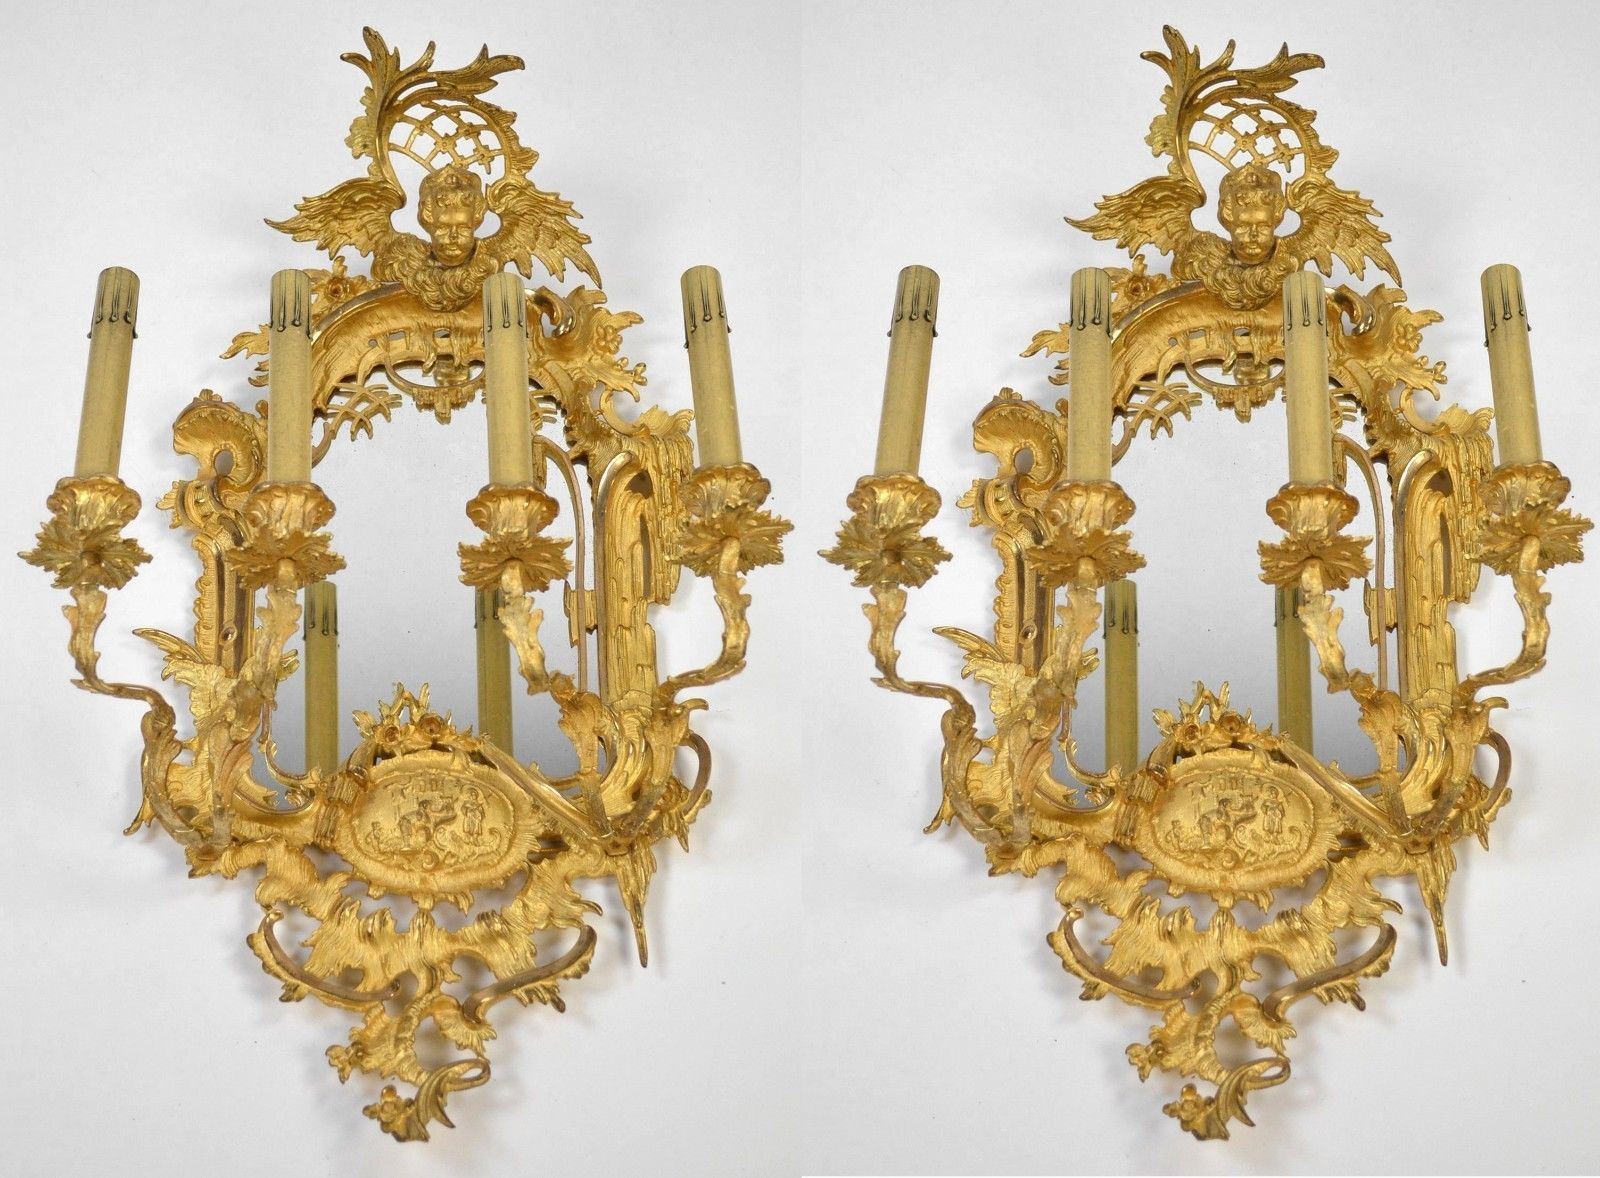 Large pair french rococo mirrored sconces c1880 ornate antique wall large pair french rococo mirrored sconces c1880 ornate wall lights aloadofball Gallery